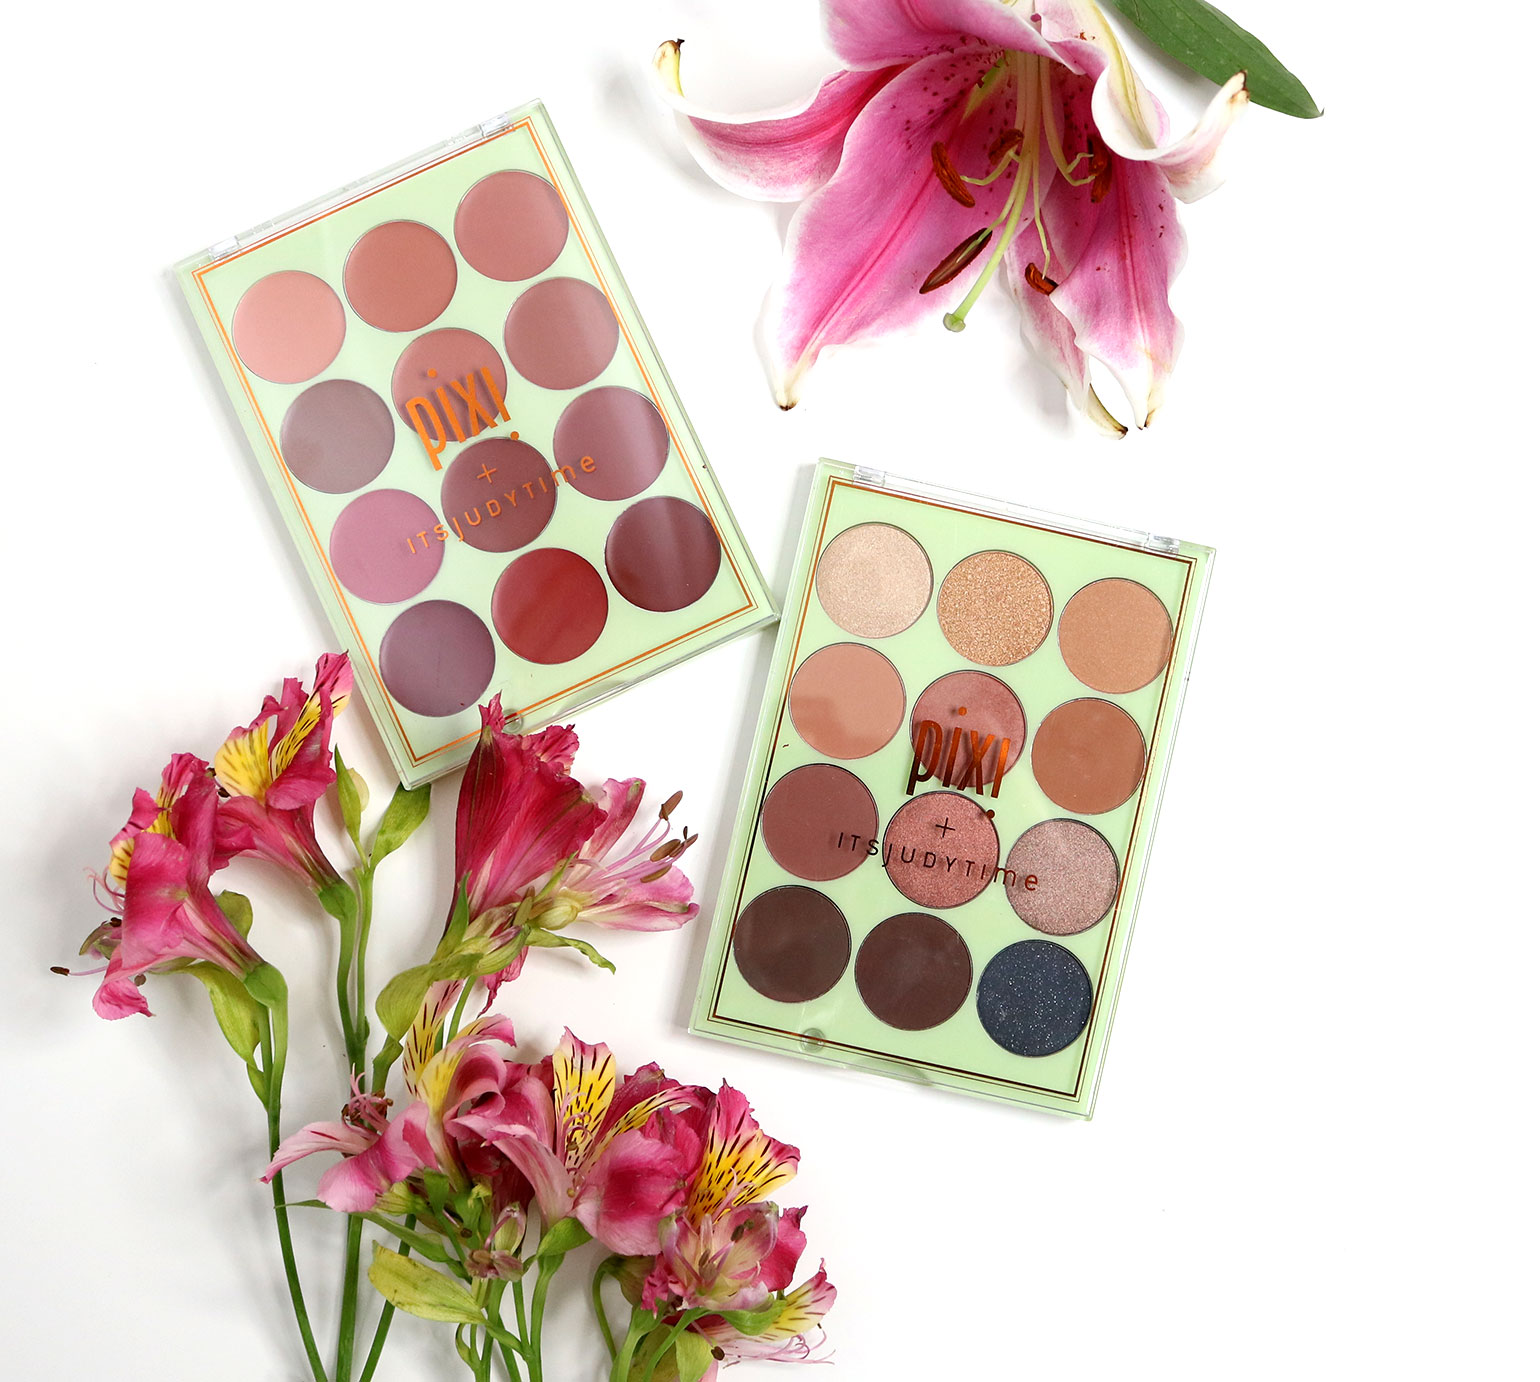 6 Pixibeauty - Pixi by Petra - ItsJudyTime Palettes Review Swatches - Gen-zel.com